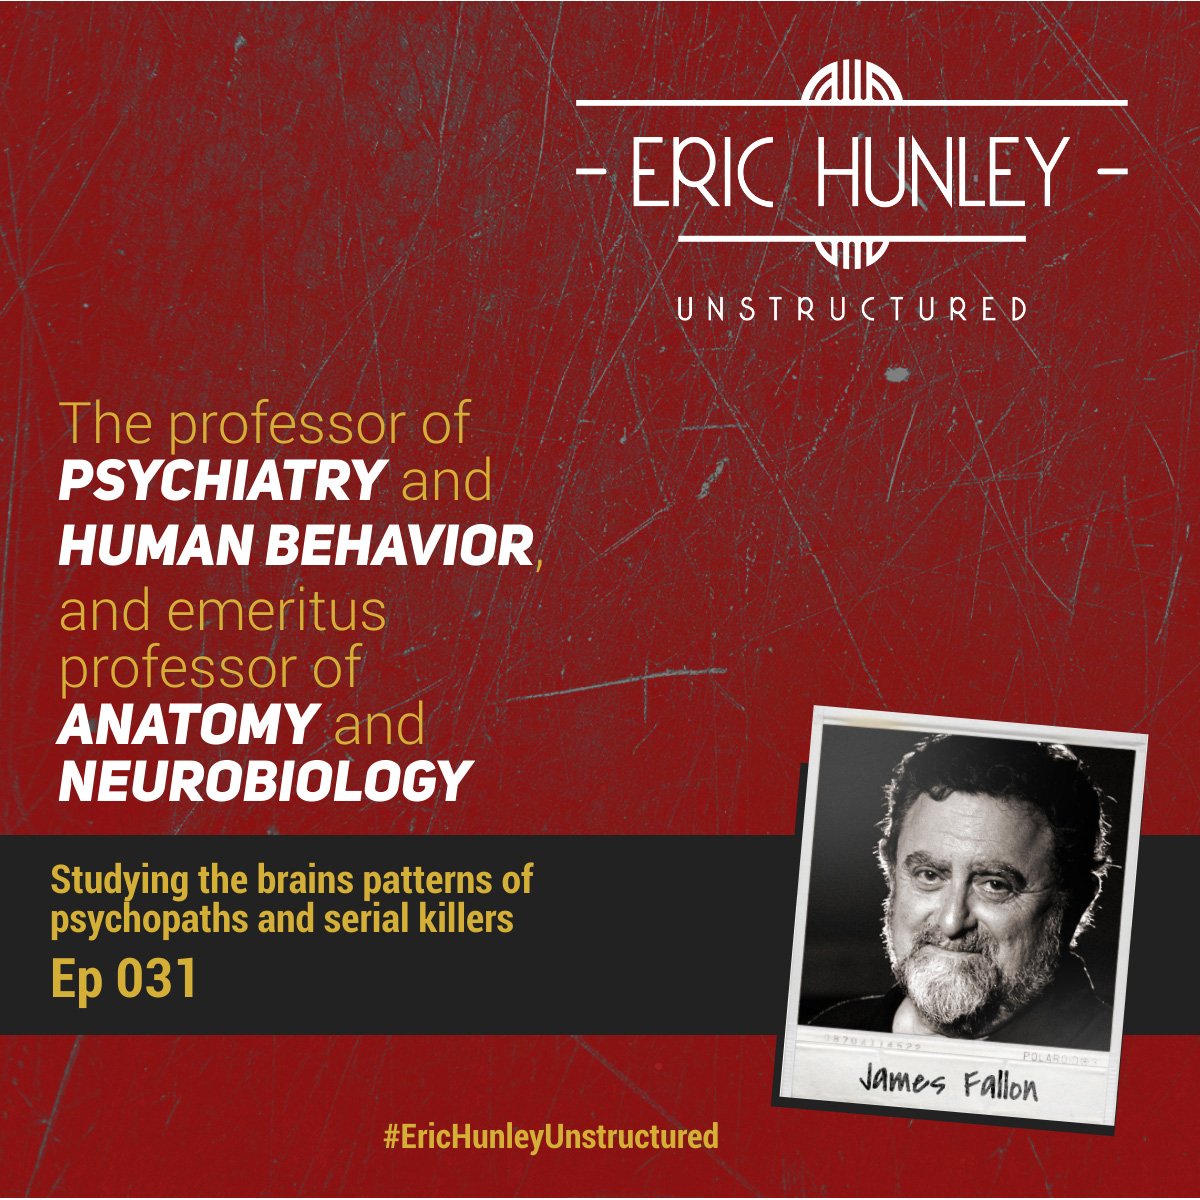 Eric Hunley Unstructured Podcast - 031 Professor James Fallon Square Post